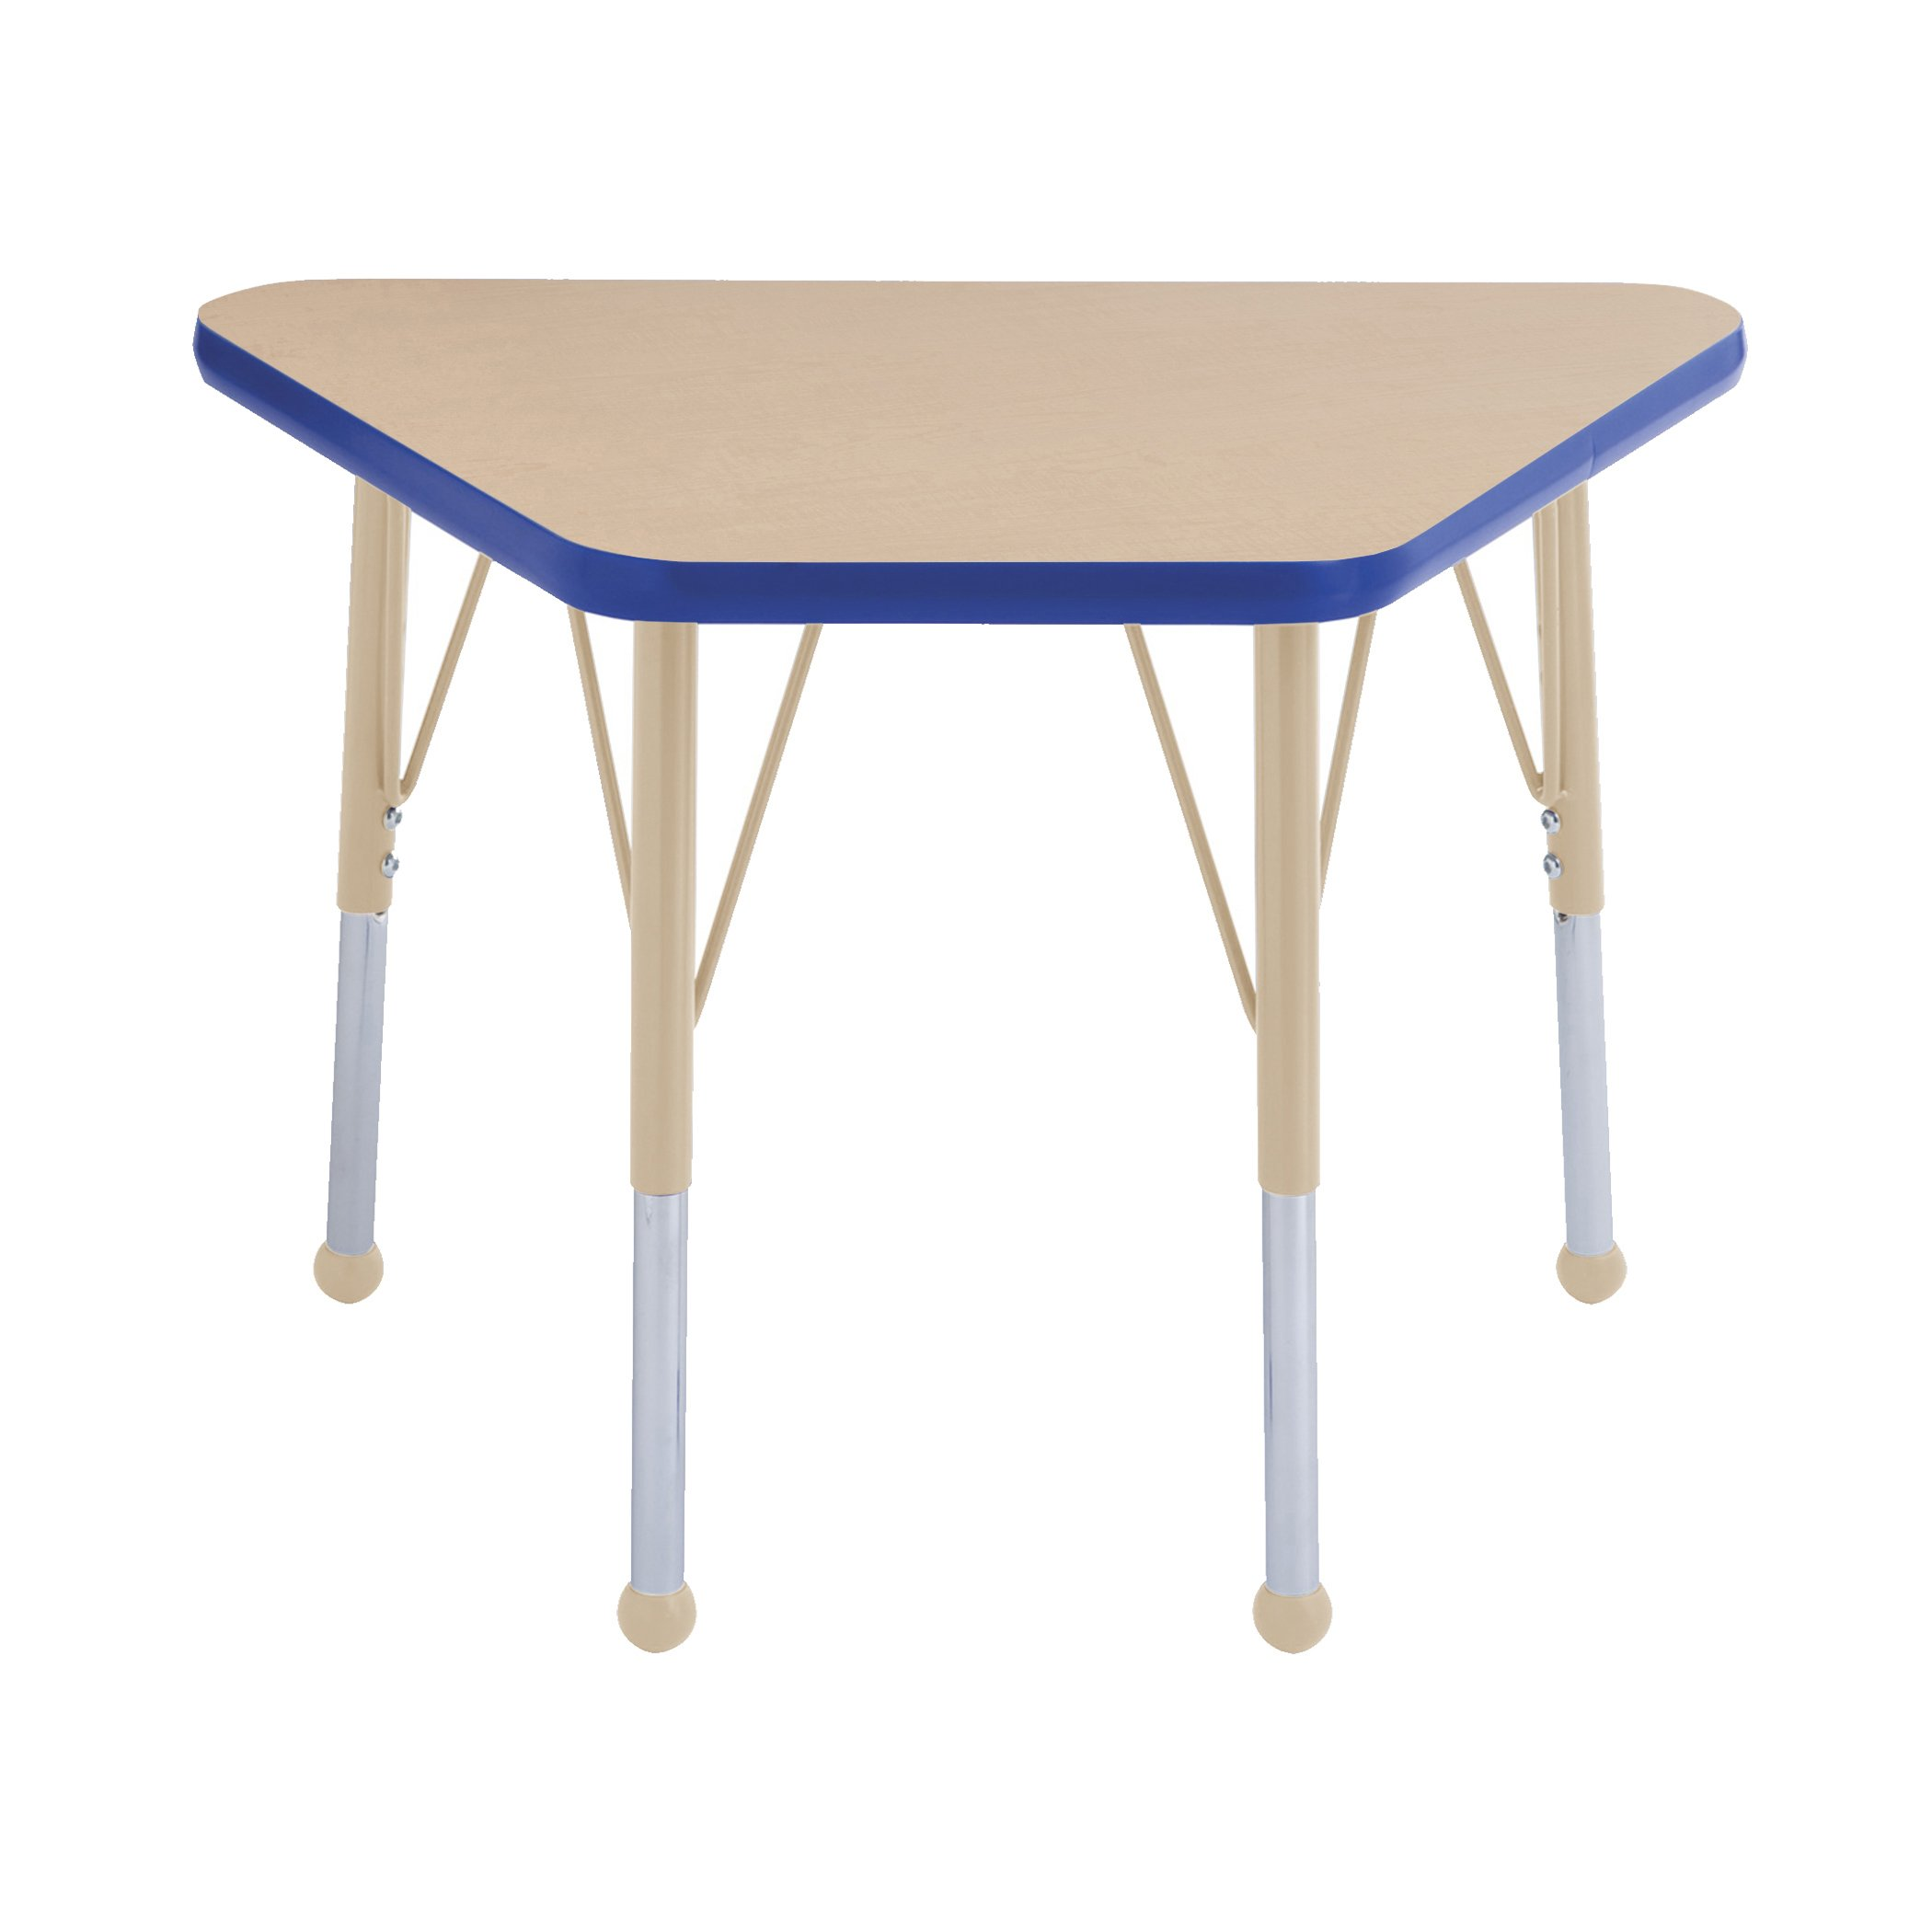 ECR4Kids Everyday T-Mold 18'' x 30'' Trapezoid Activity School Table, Standard Legs w/Ball Glides, Adjustable Height 19-30 inch (Maple/Blue/Sand) by ECR4Kids